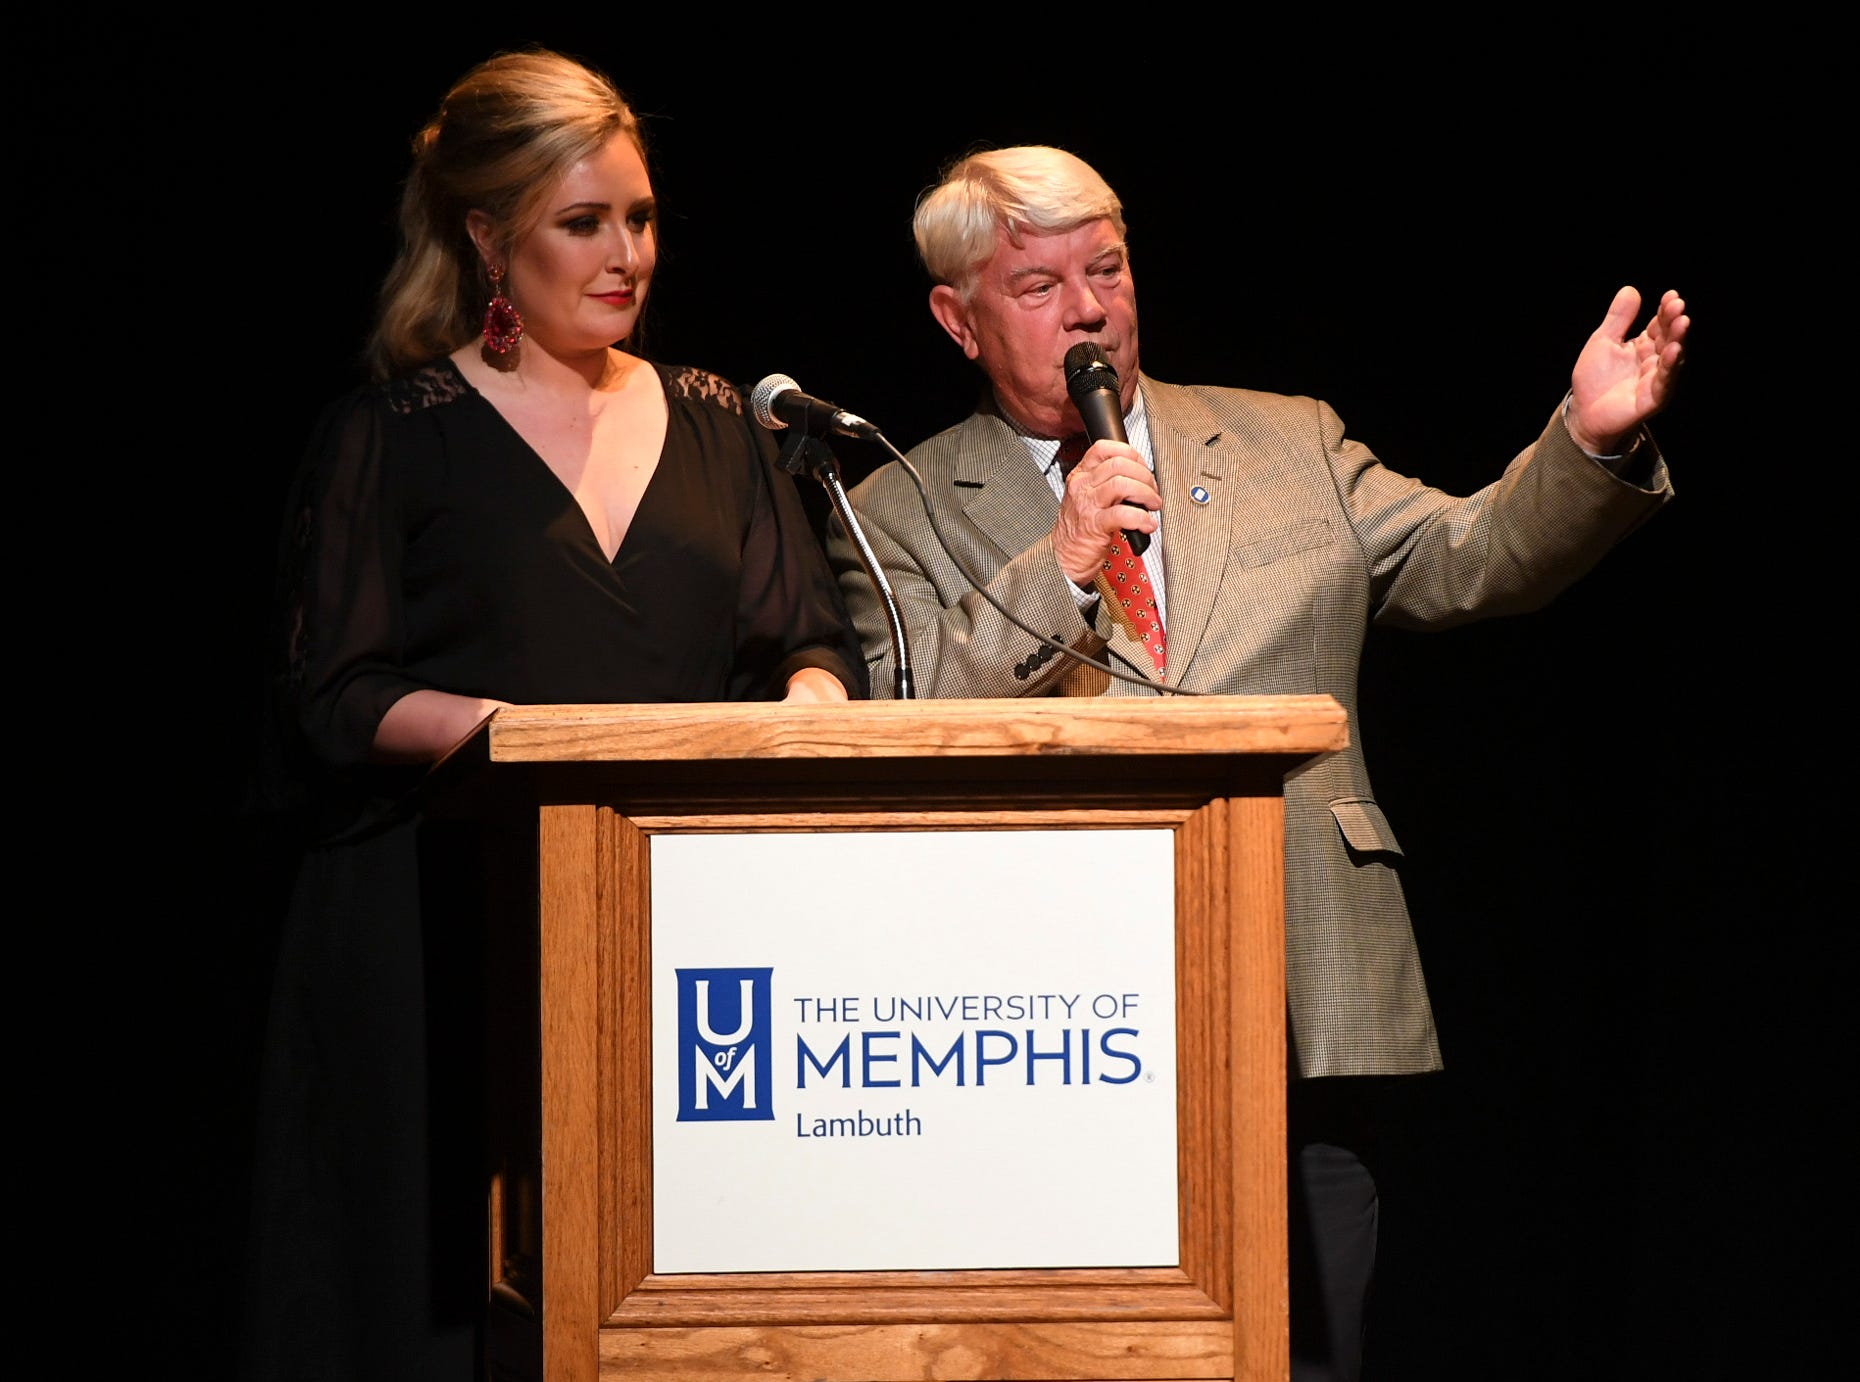 Miss Tennessee 2016 Grace Burgess and Rep. Jimmy Eldridge presented the awards for Guitarist of the Year, Hip Hop/Rap Artist of the Year, and Indie Band of the Year at the 2nd Annual Tennessee Music Awards, Monday, October 8, at University of Memphis Lambuth.